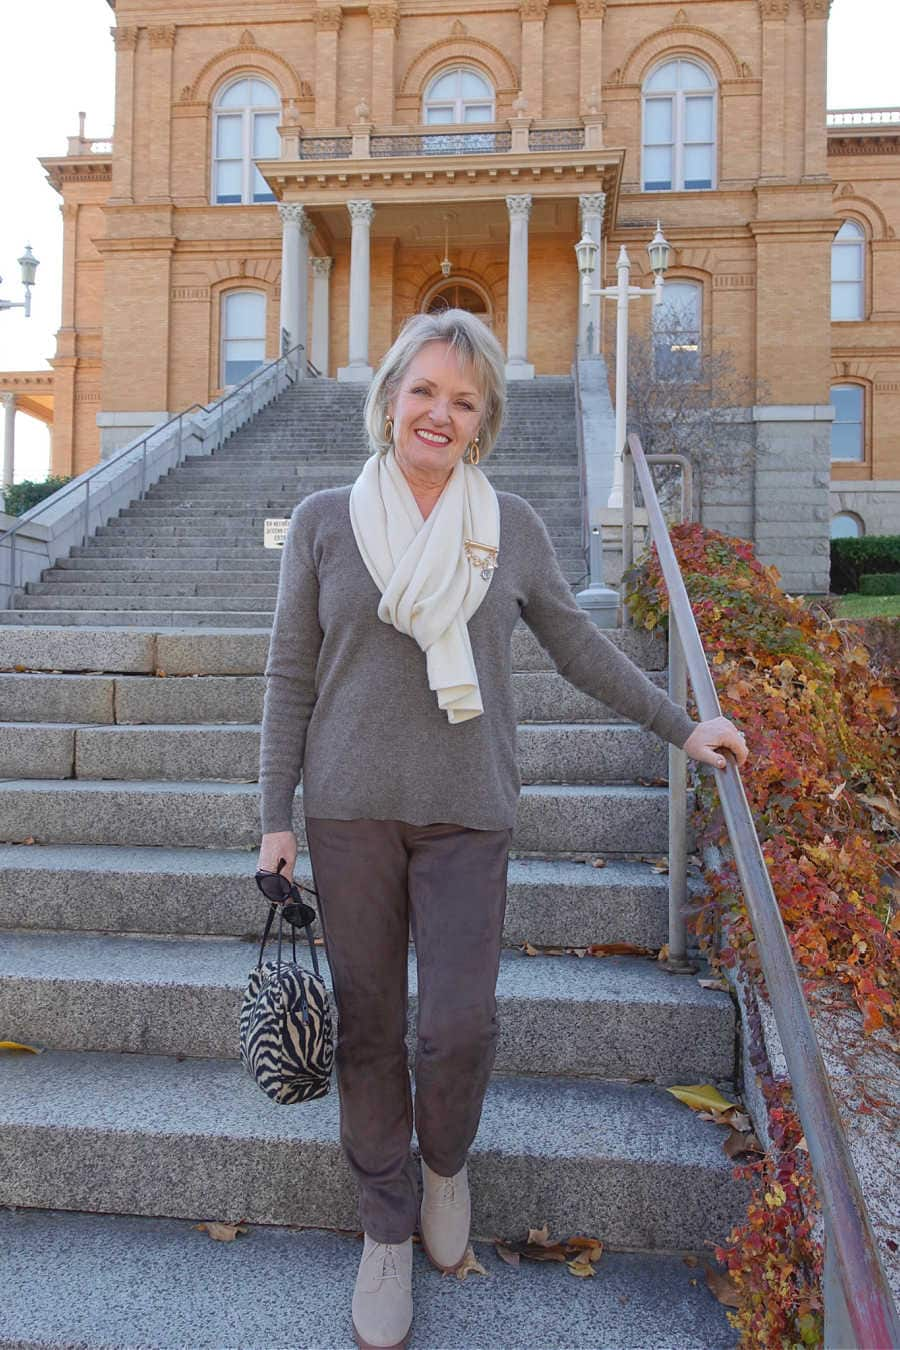 jennifer connolly of a well styled life wearing beige sweater and pants on stairs of old building